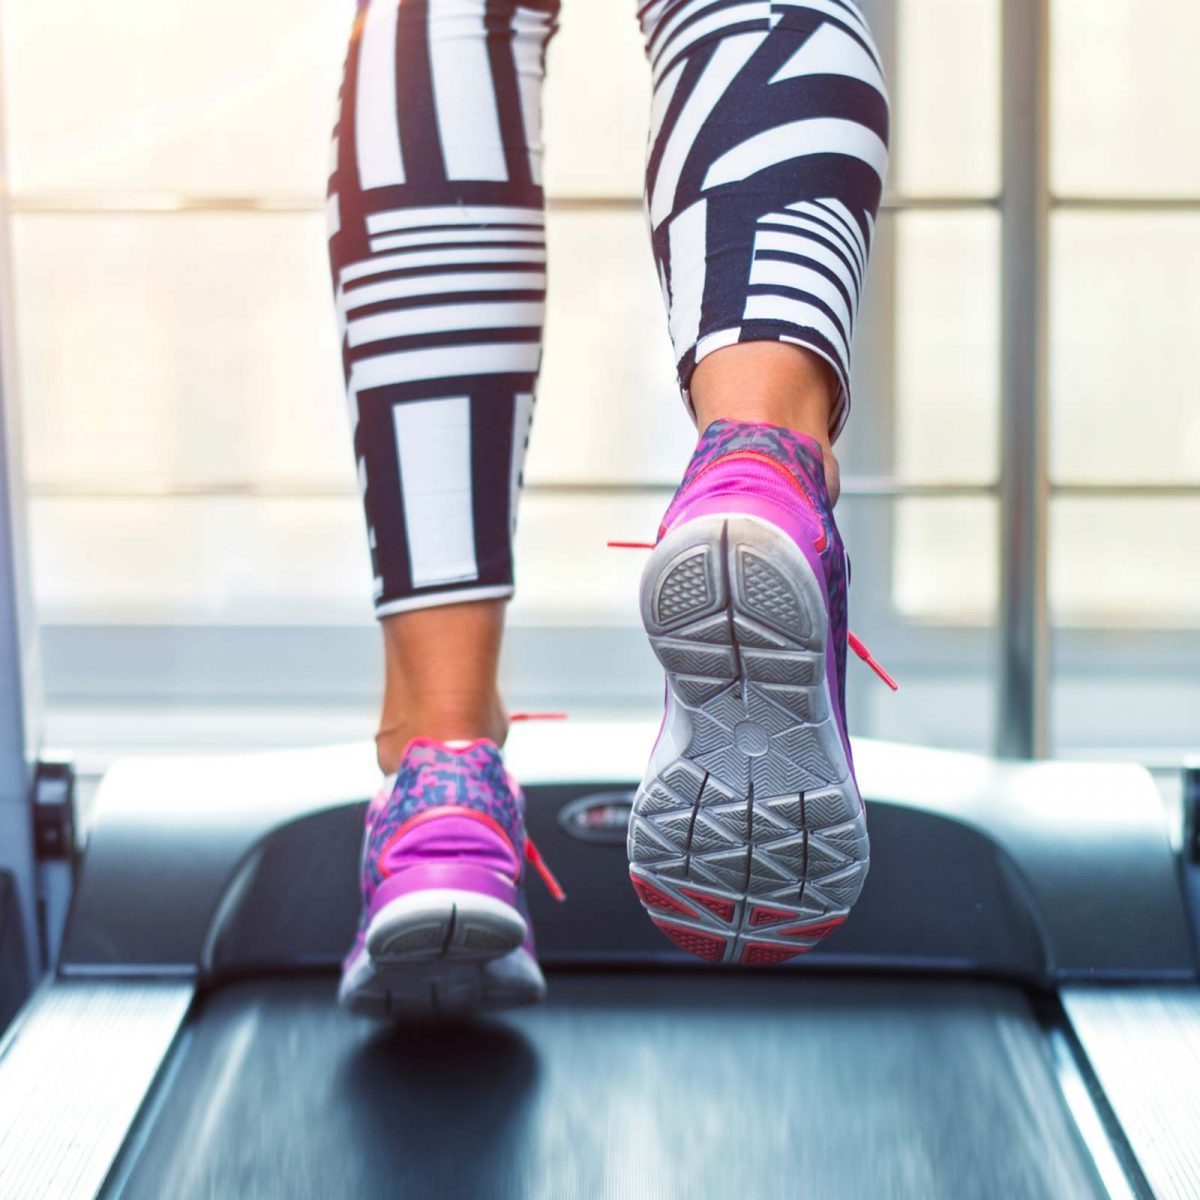 10 Secrets Personal Trainers Wont Tell You